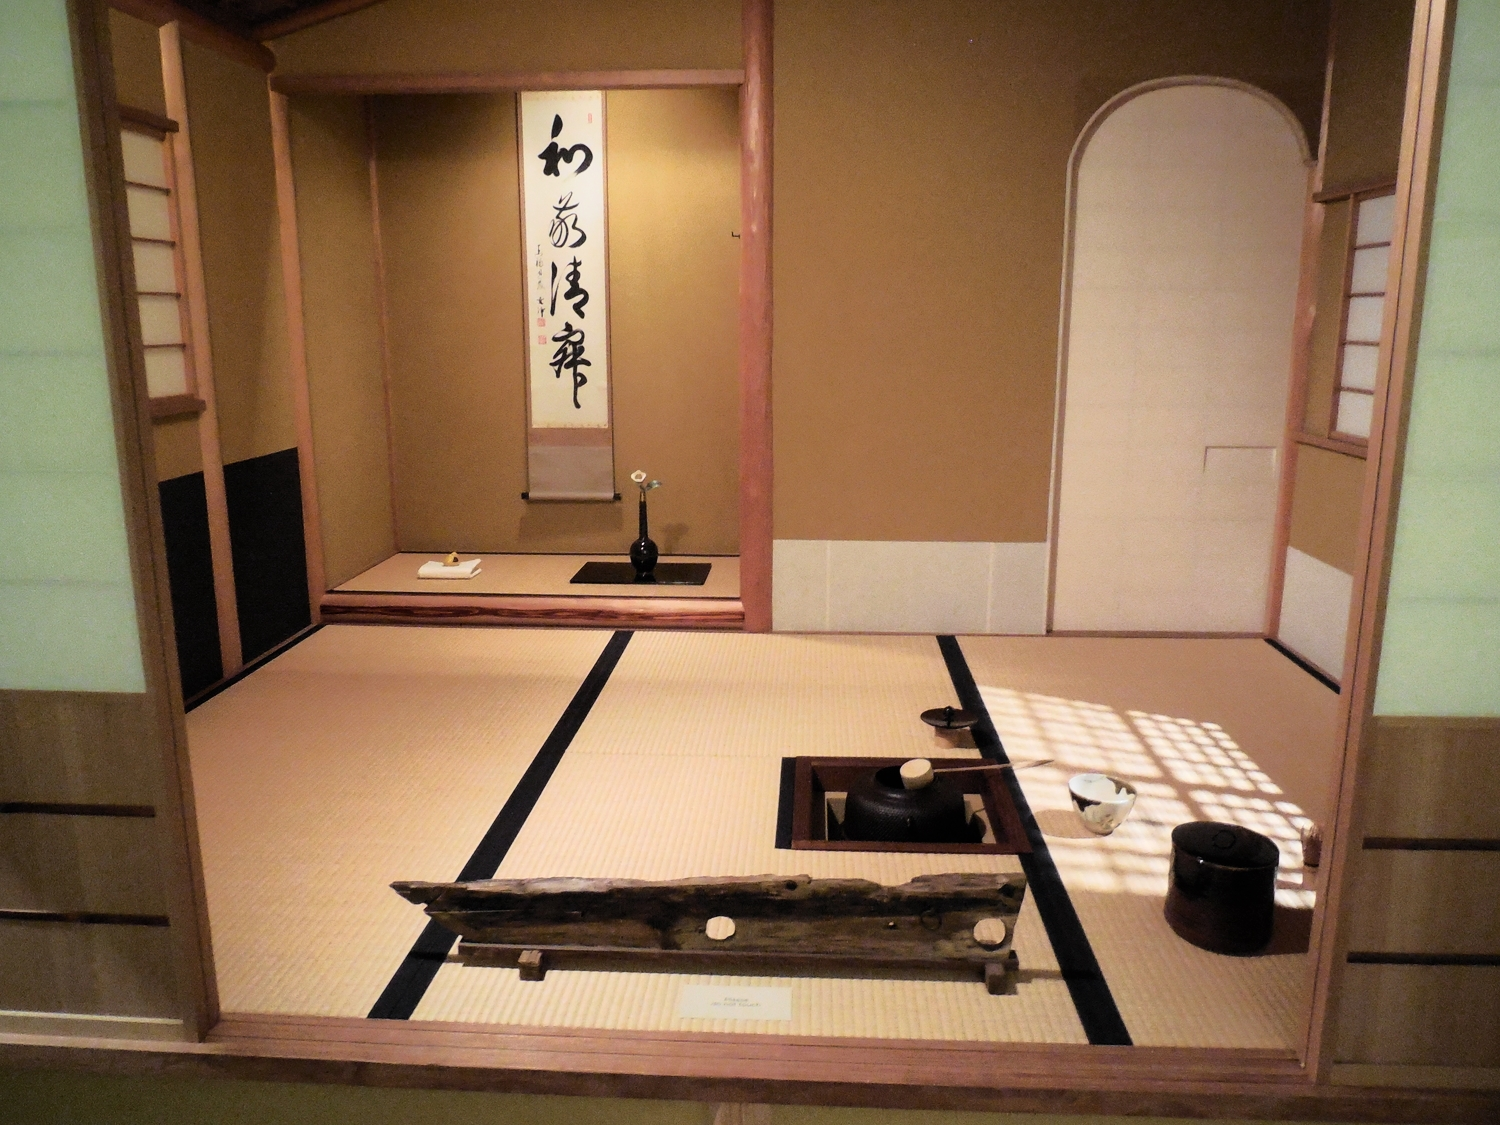 """Seattle Art Museum's """"Ryokusuian"""" (Green Reflecting Waters) teahouse, third Thursday monthly presentations from 6:30PM"""